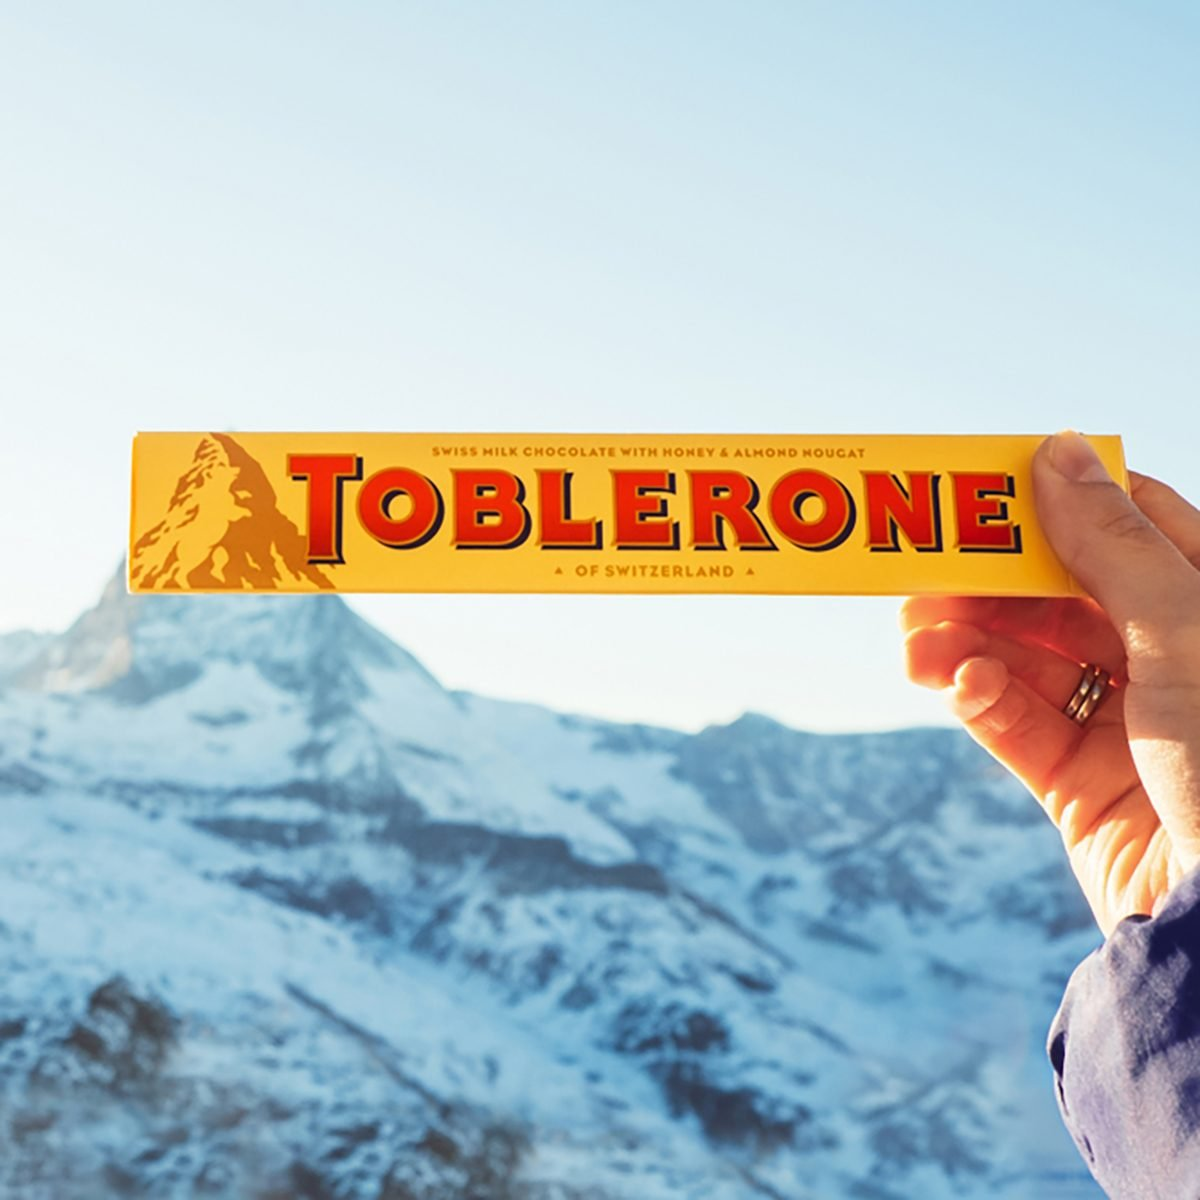 Female hand holds Toblerone chocolate on the Matterhorn mountain background in Switzerland.